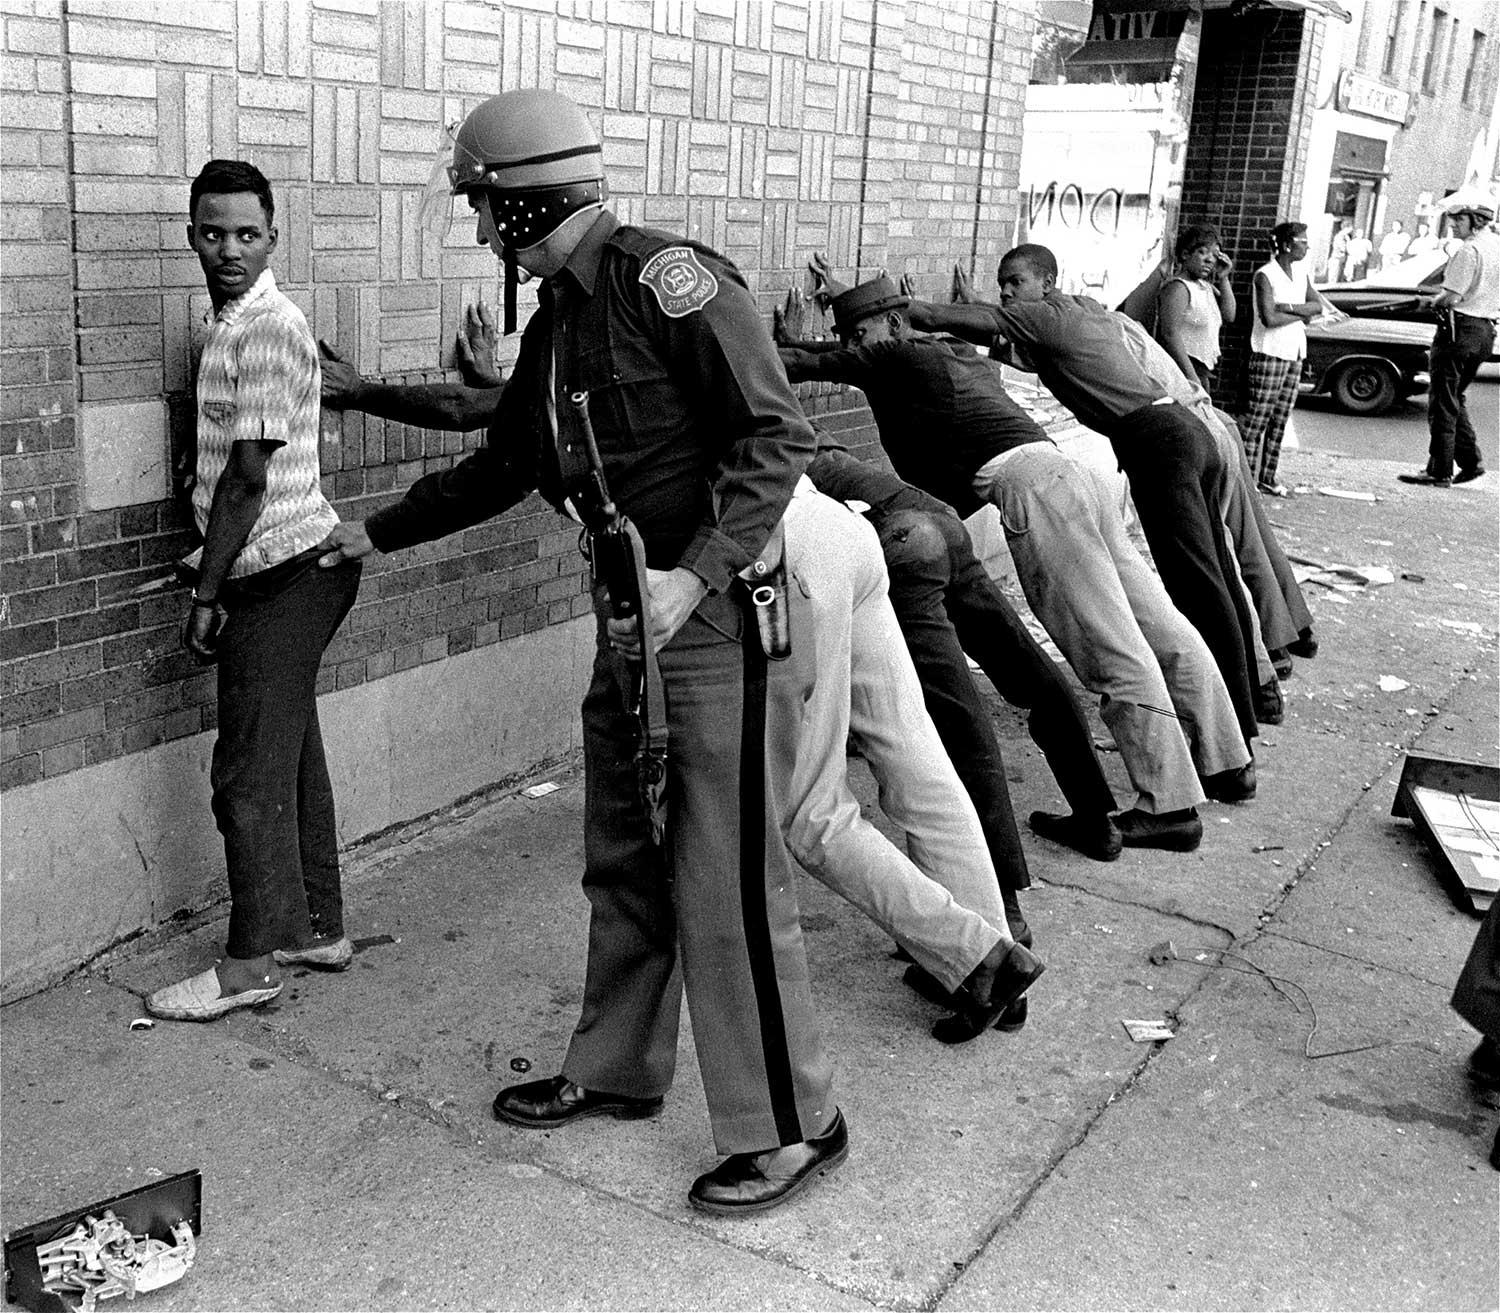 Art and Documentary Photography - Loading 50th-anniversary-detriot-riots-0aede610-fb72-4883-a0e0-681654e93ee5.jpg